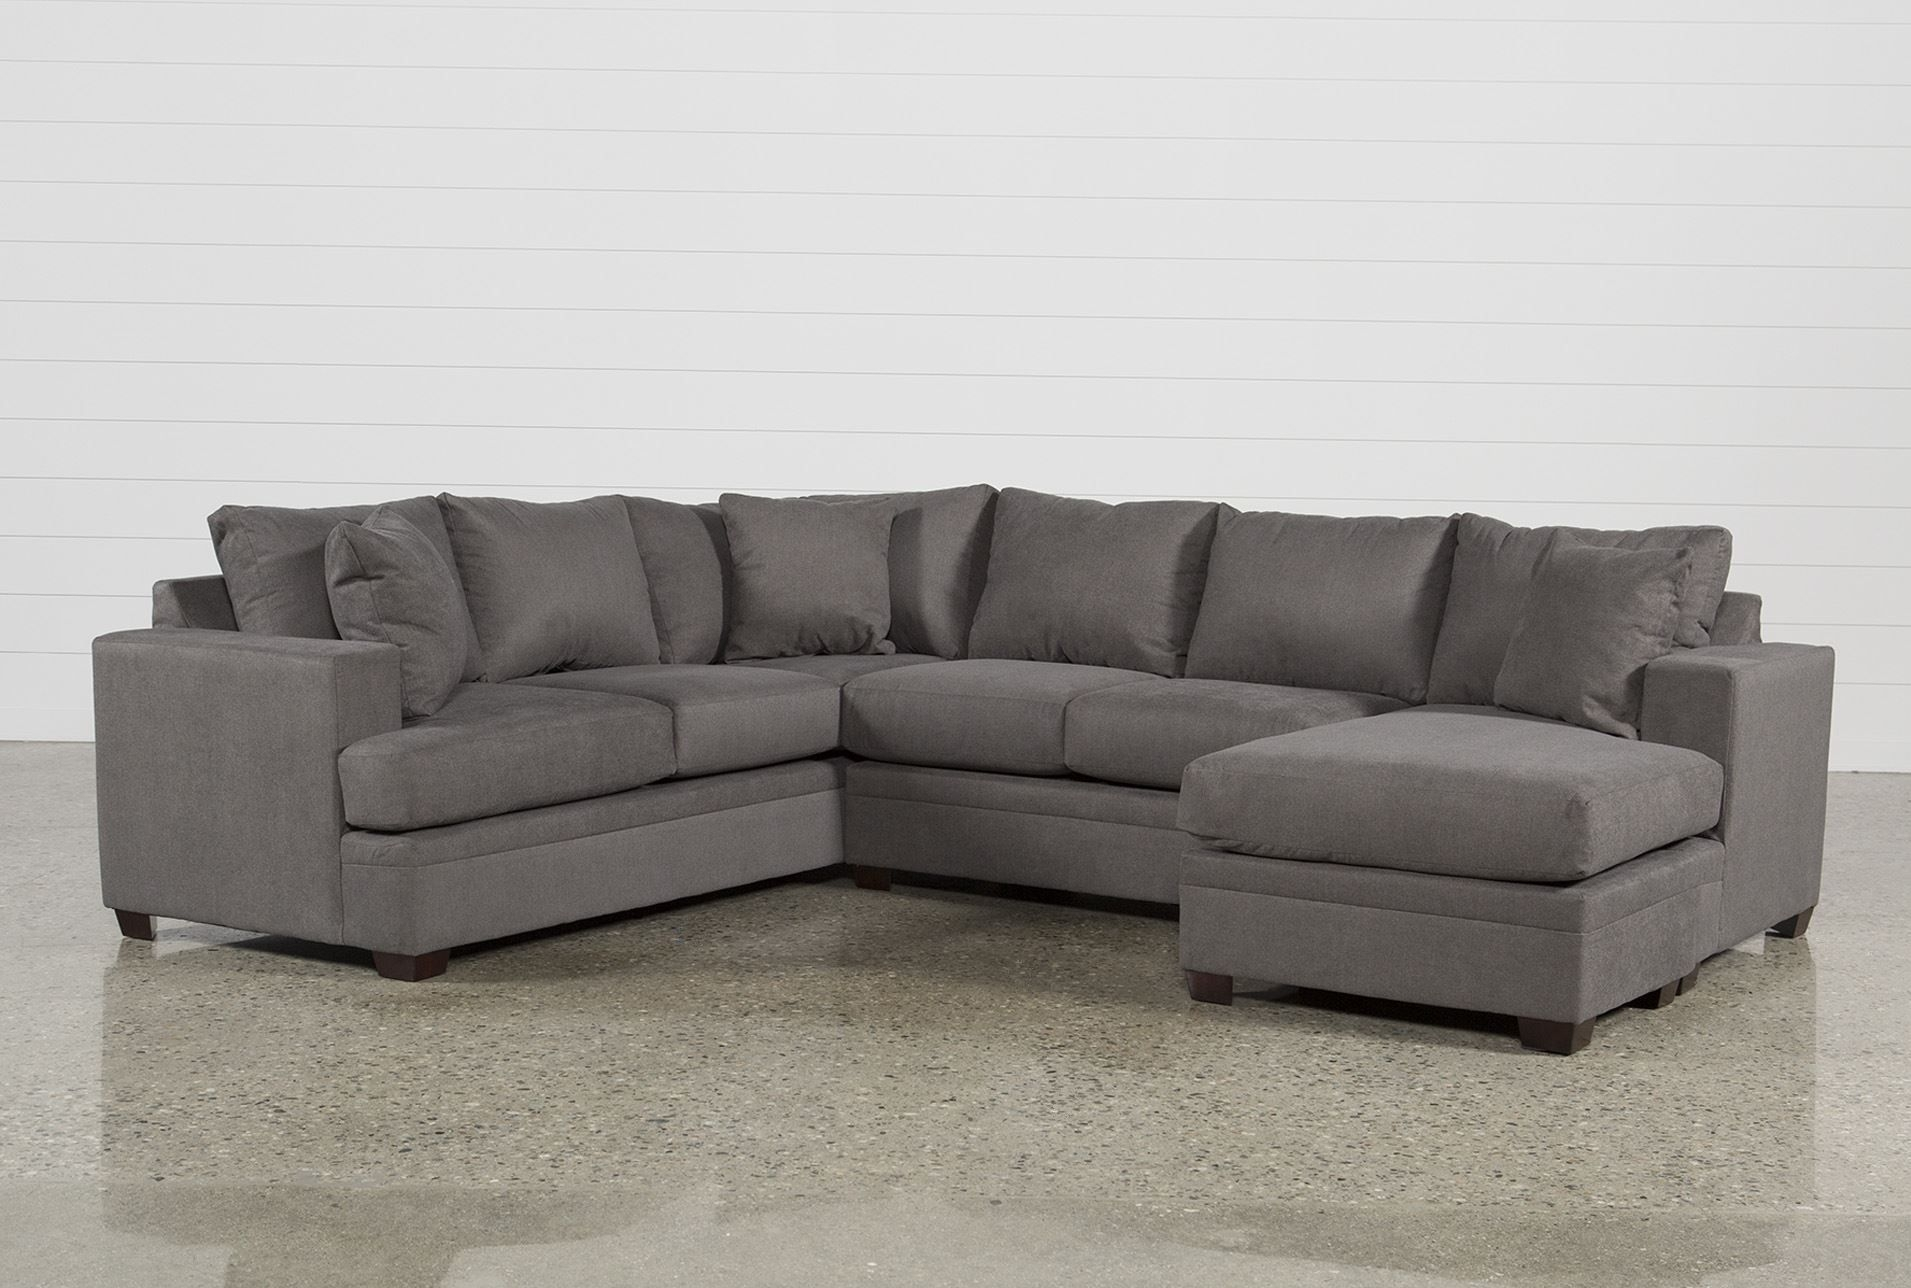 Kerri 2 Piece Sectional W/raf Chaise In 2018 | Products | Pinterest Intended For Lucy Grey 2 Piece Sectionals With Laf Chaise (Photo 3 of 30)